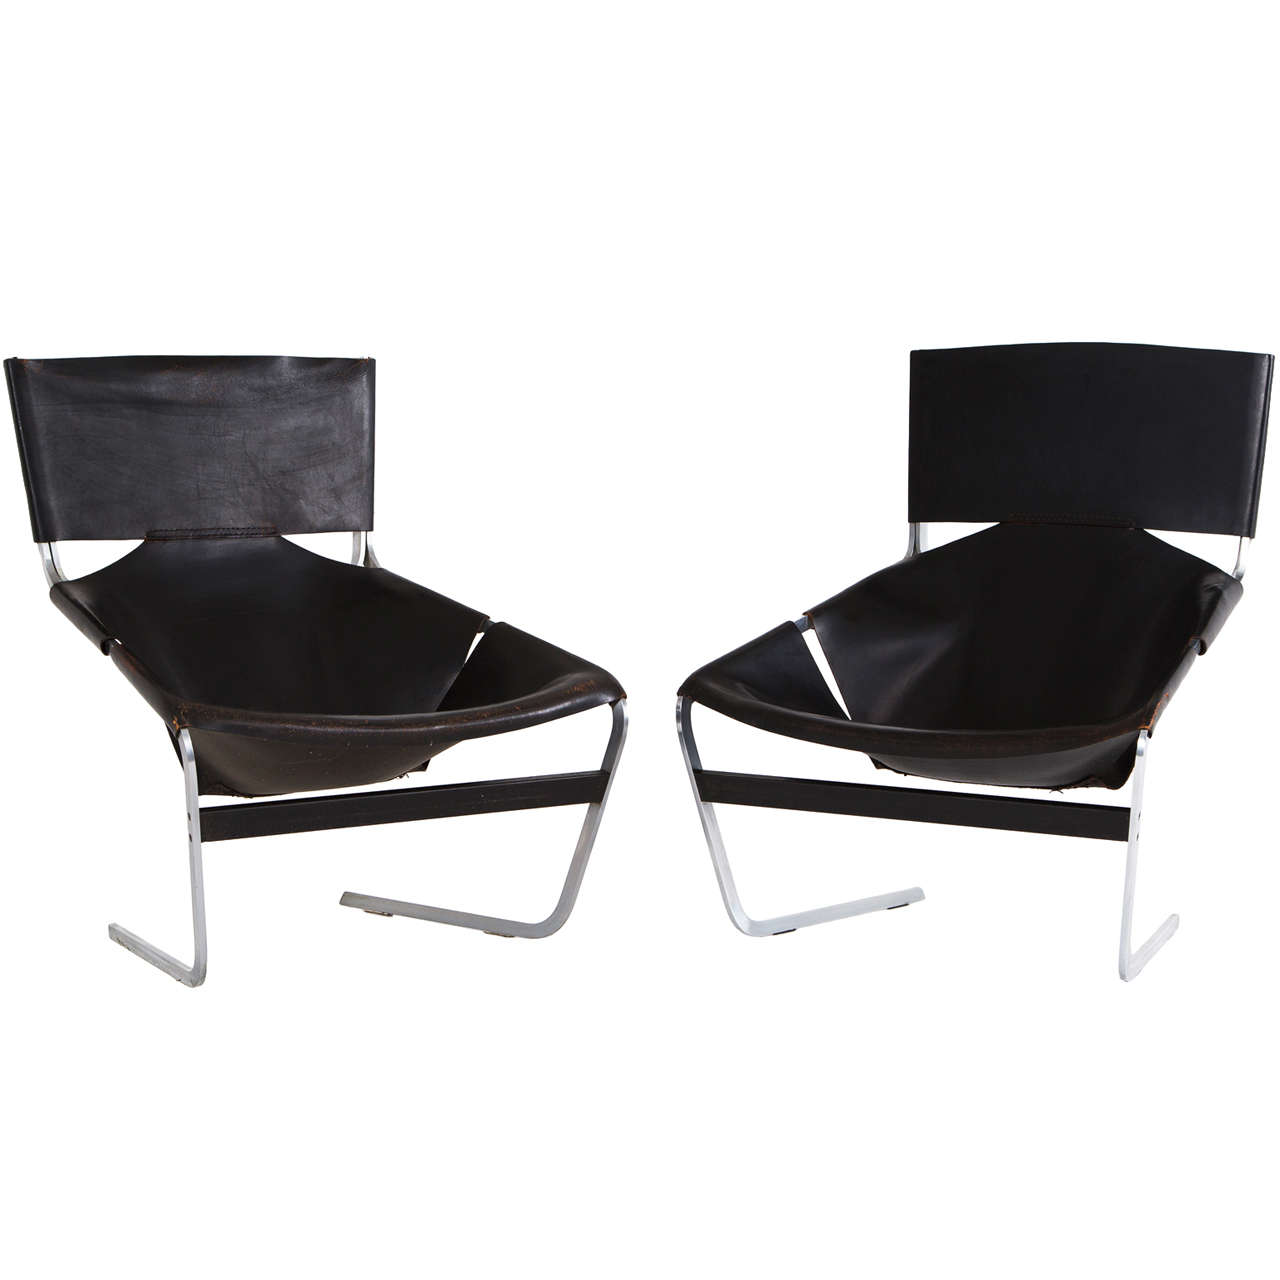 Pair of F-444 Lounge Chairs by Pierre Paulin